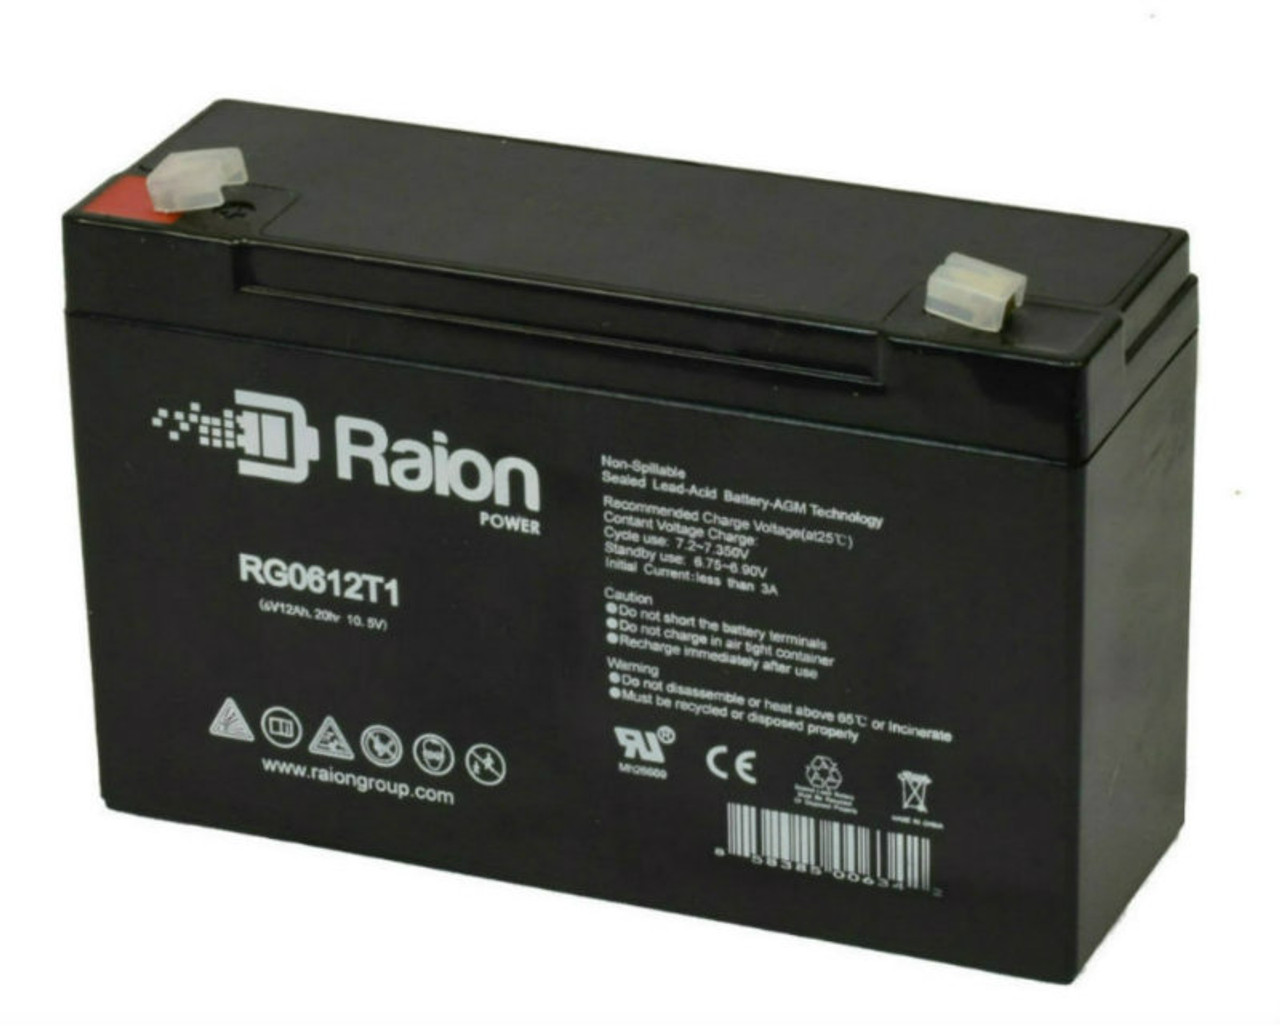 Raion Power RG06120T1 Replacement Battery Pack for Dynaray S18183 emergency light